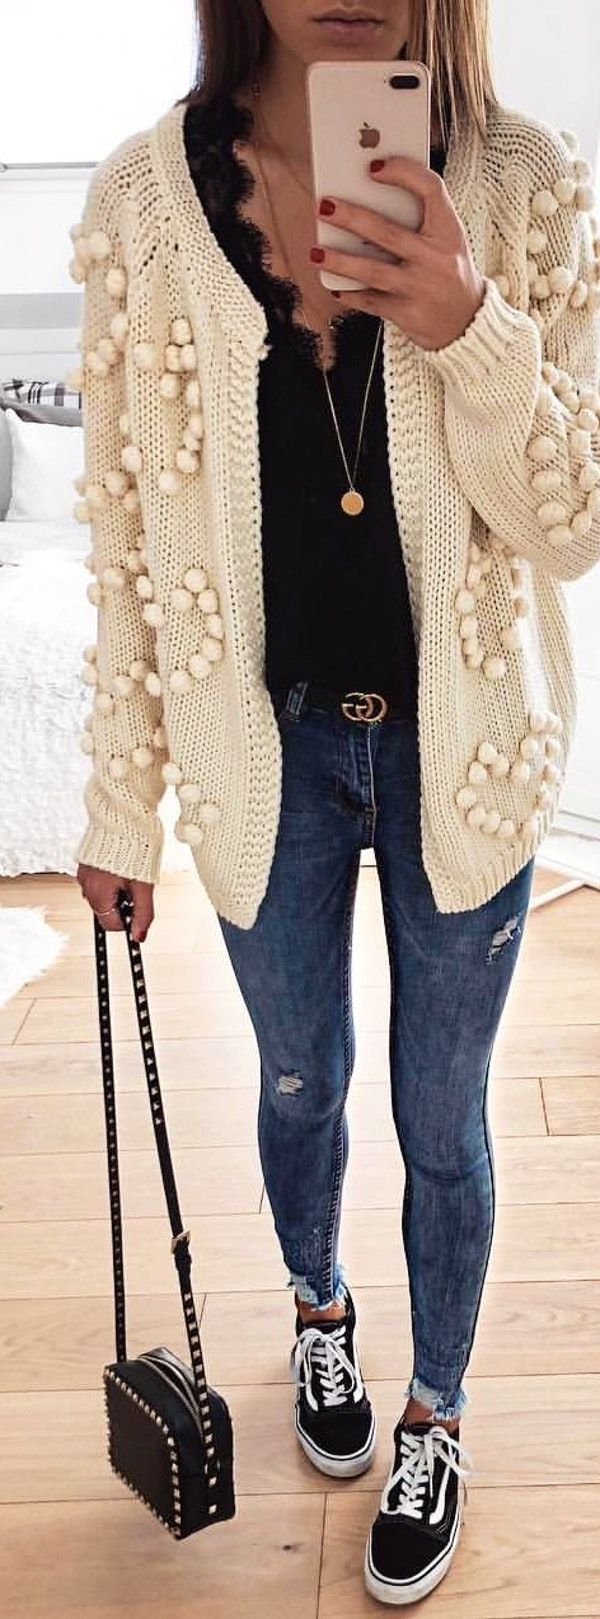 #spring #outfits  woman wearing white cardigan and blue jeans and holding black leather crossbody bag. Pic by @fashionpuglady